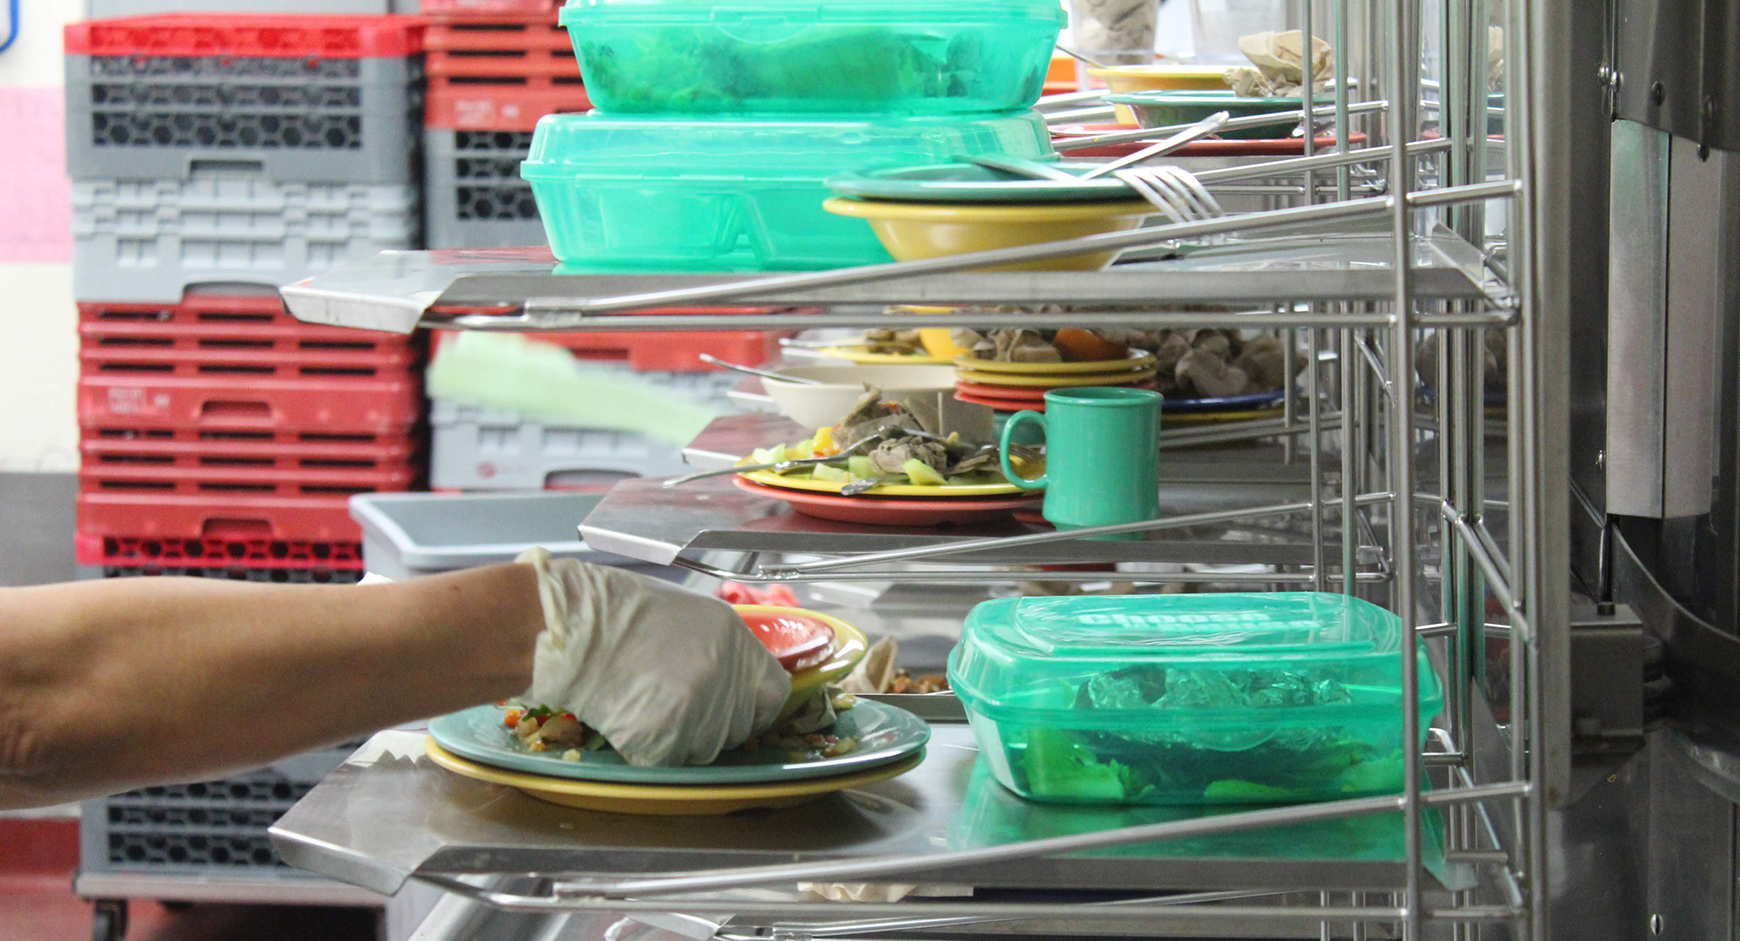 Plate Waste studies in UT Austin Housing and Dining